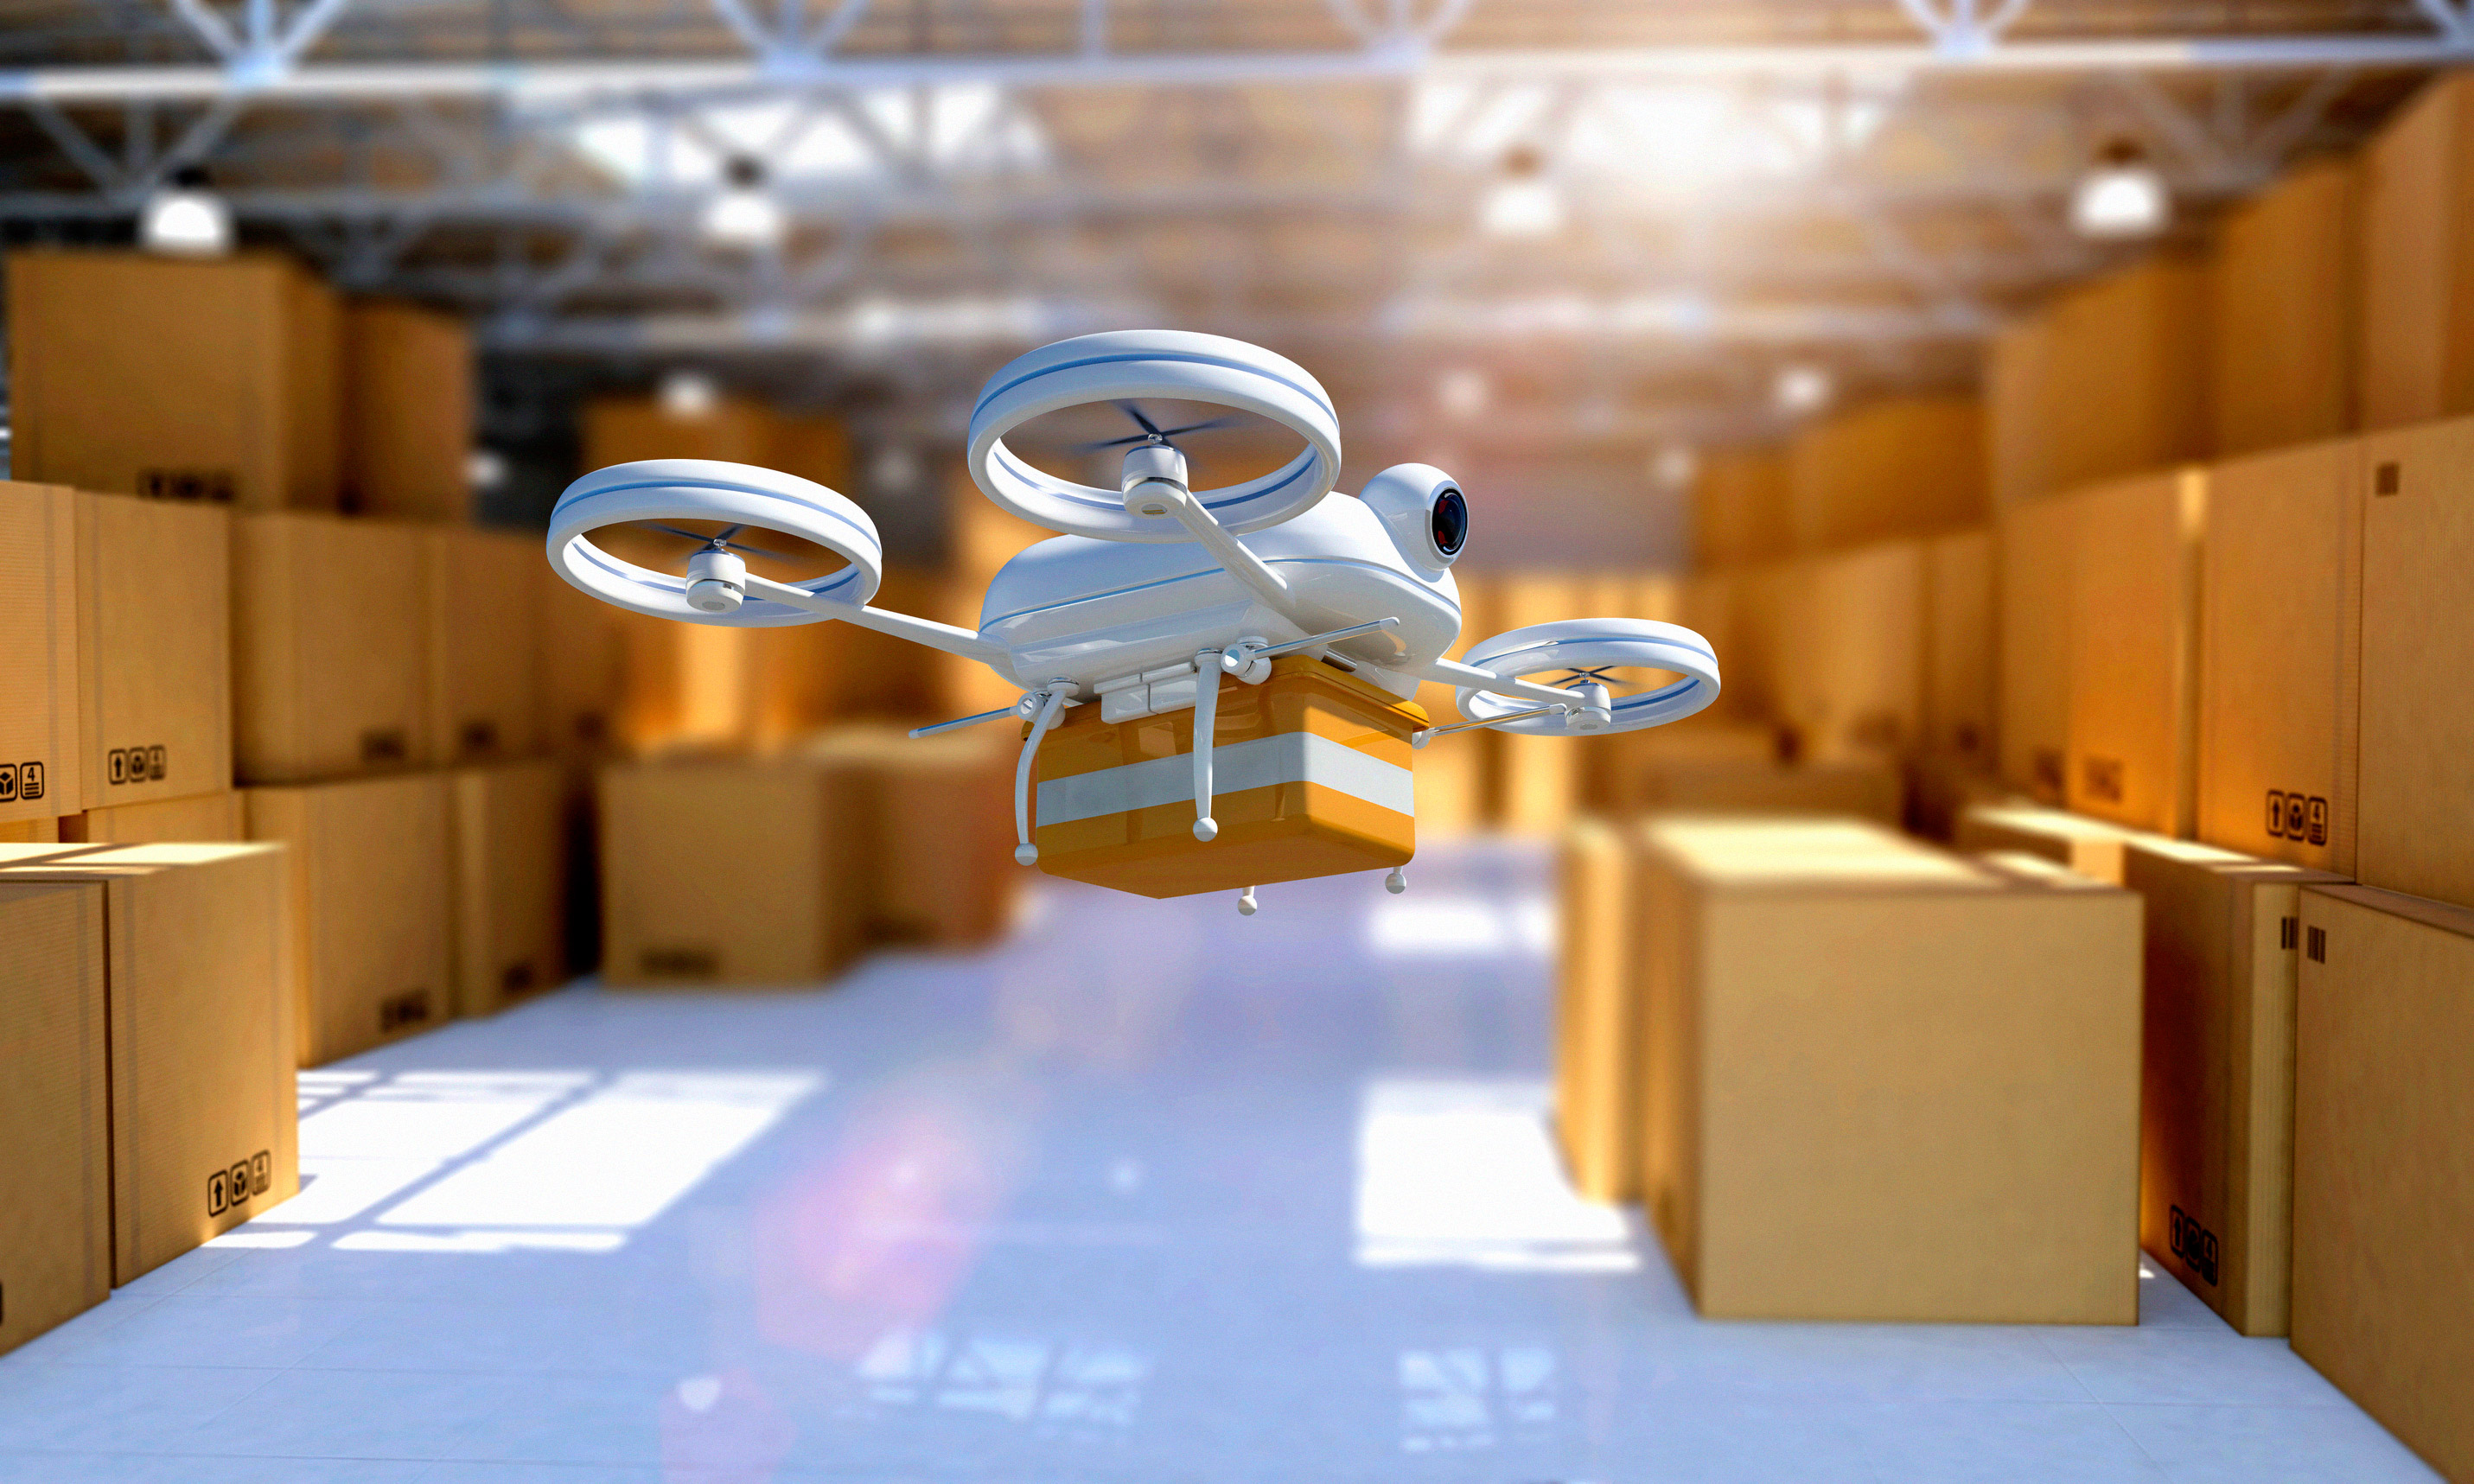 Drone-taking-off-from-warehouse-to-deliver-package